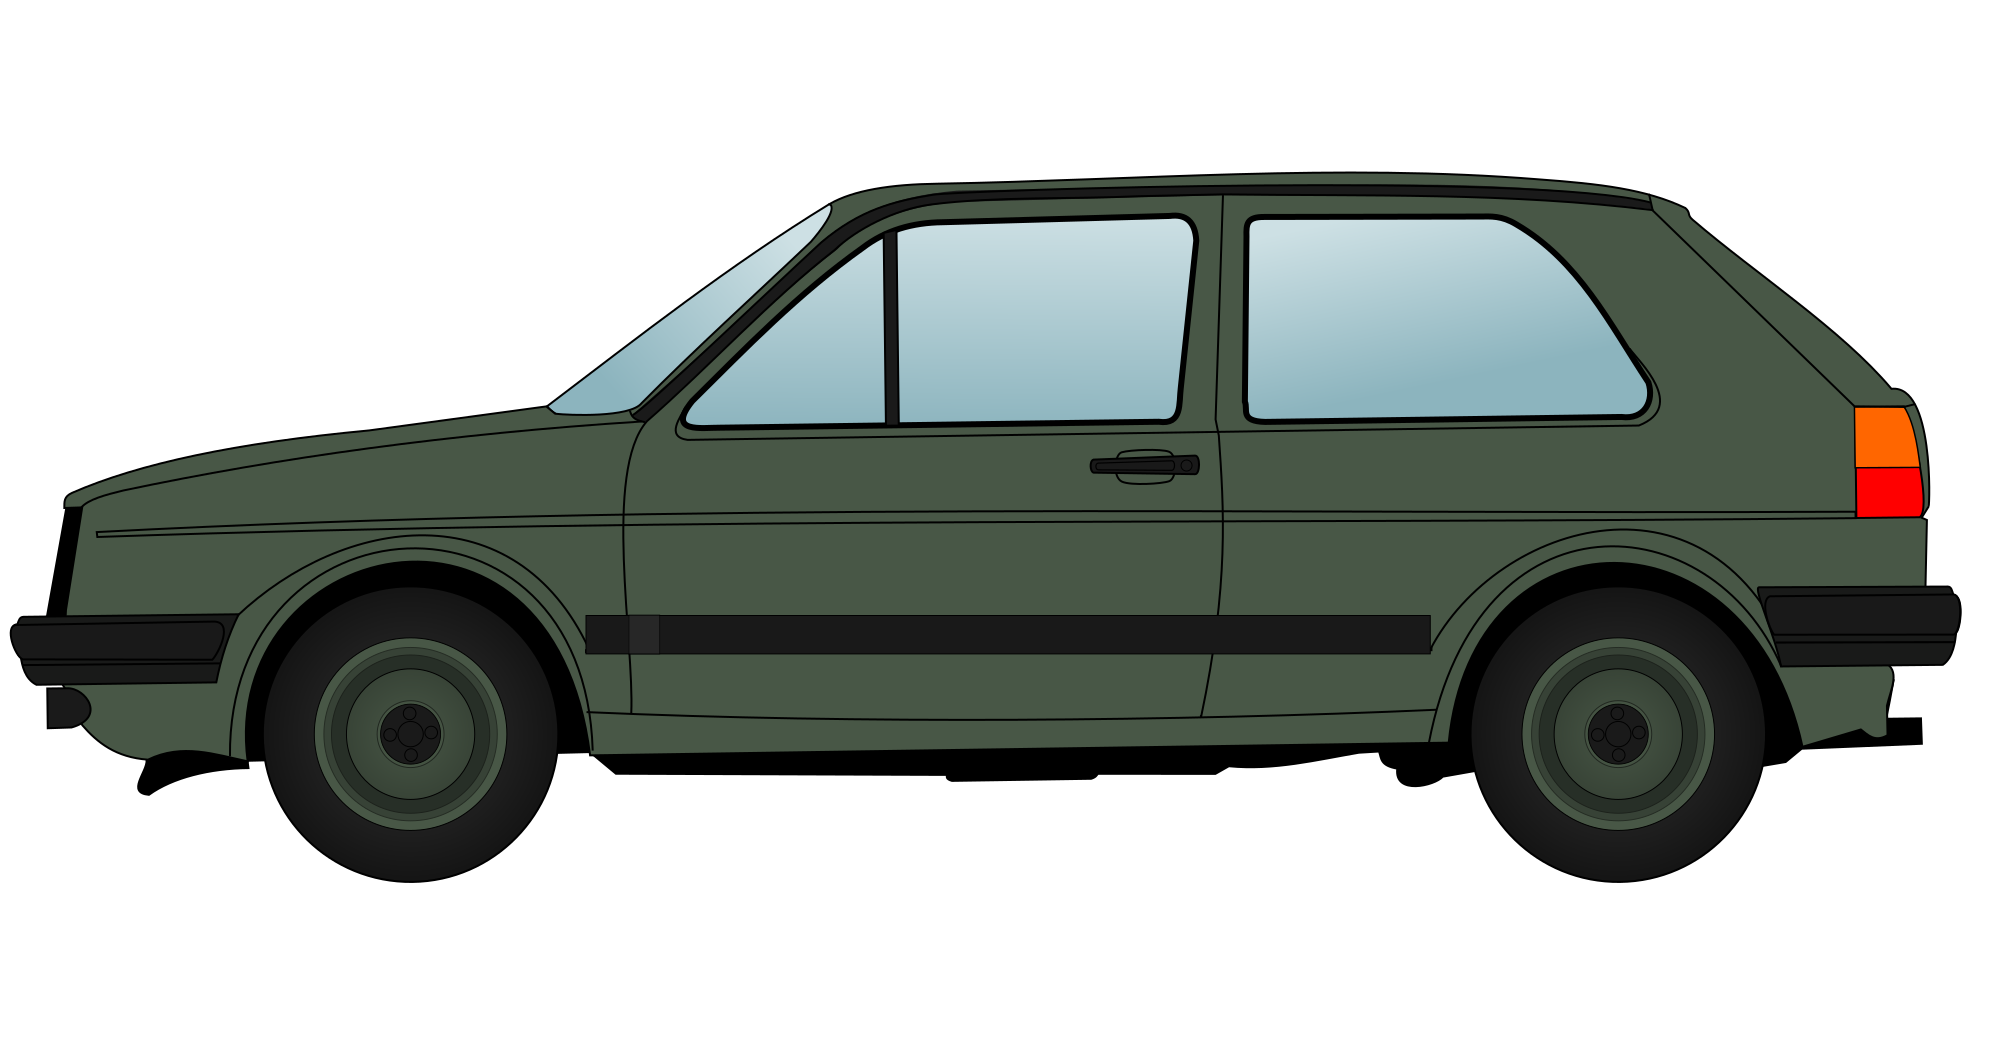 Volkswagen drawing mk2. File vw golf ii